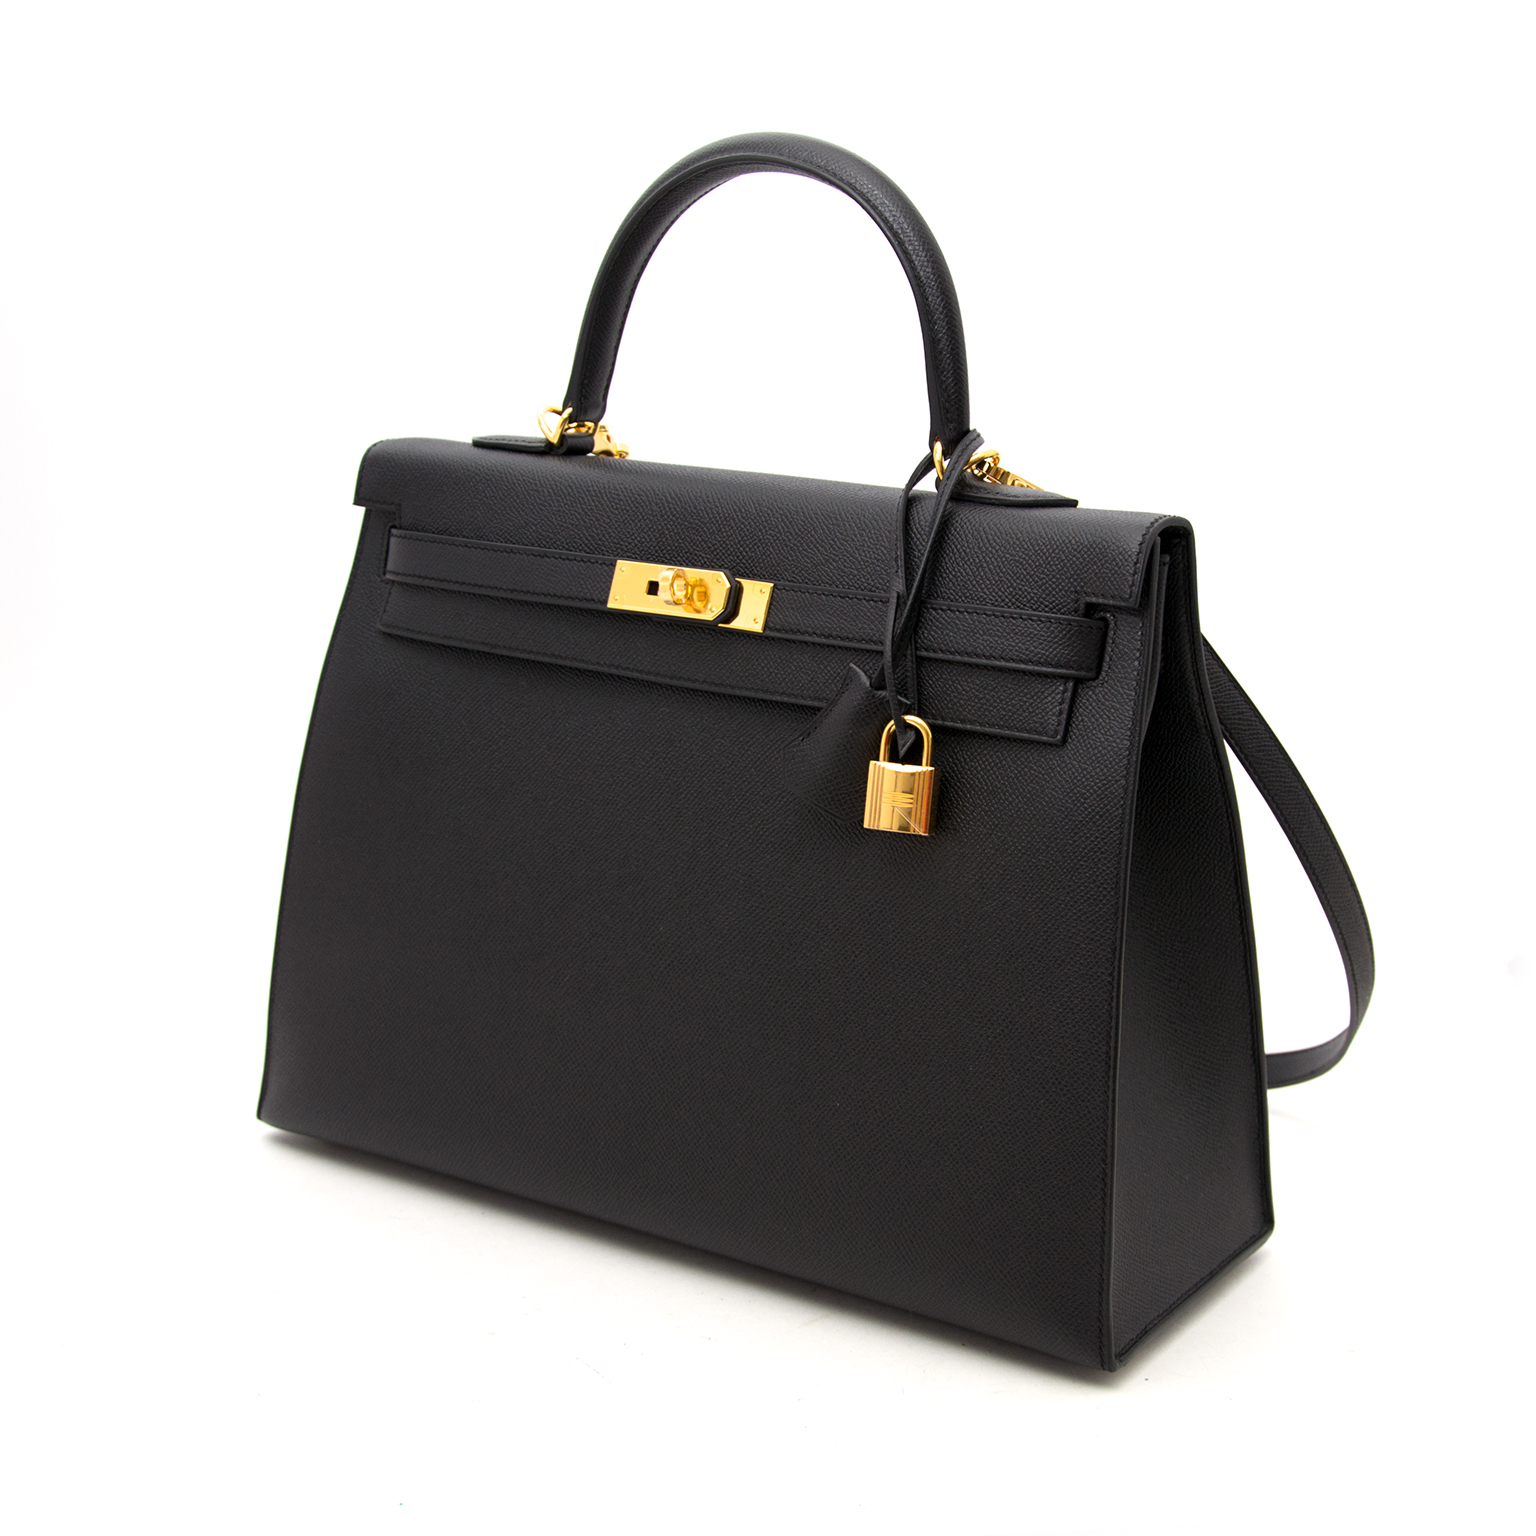 3a4a969cdf09 ... Buy safe and secure online at labellov.com brand new hermes kelly 35 ll  sellier